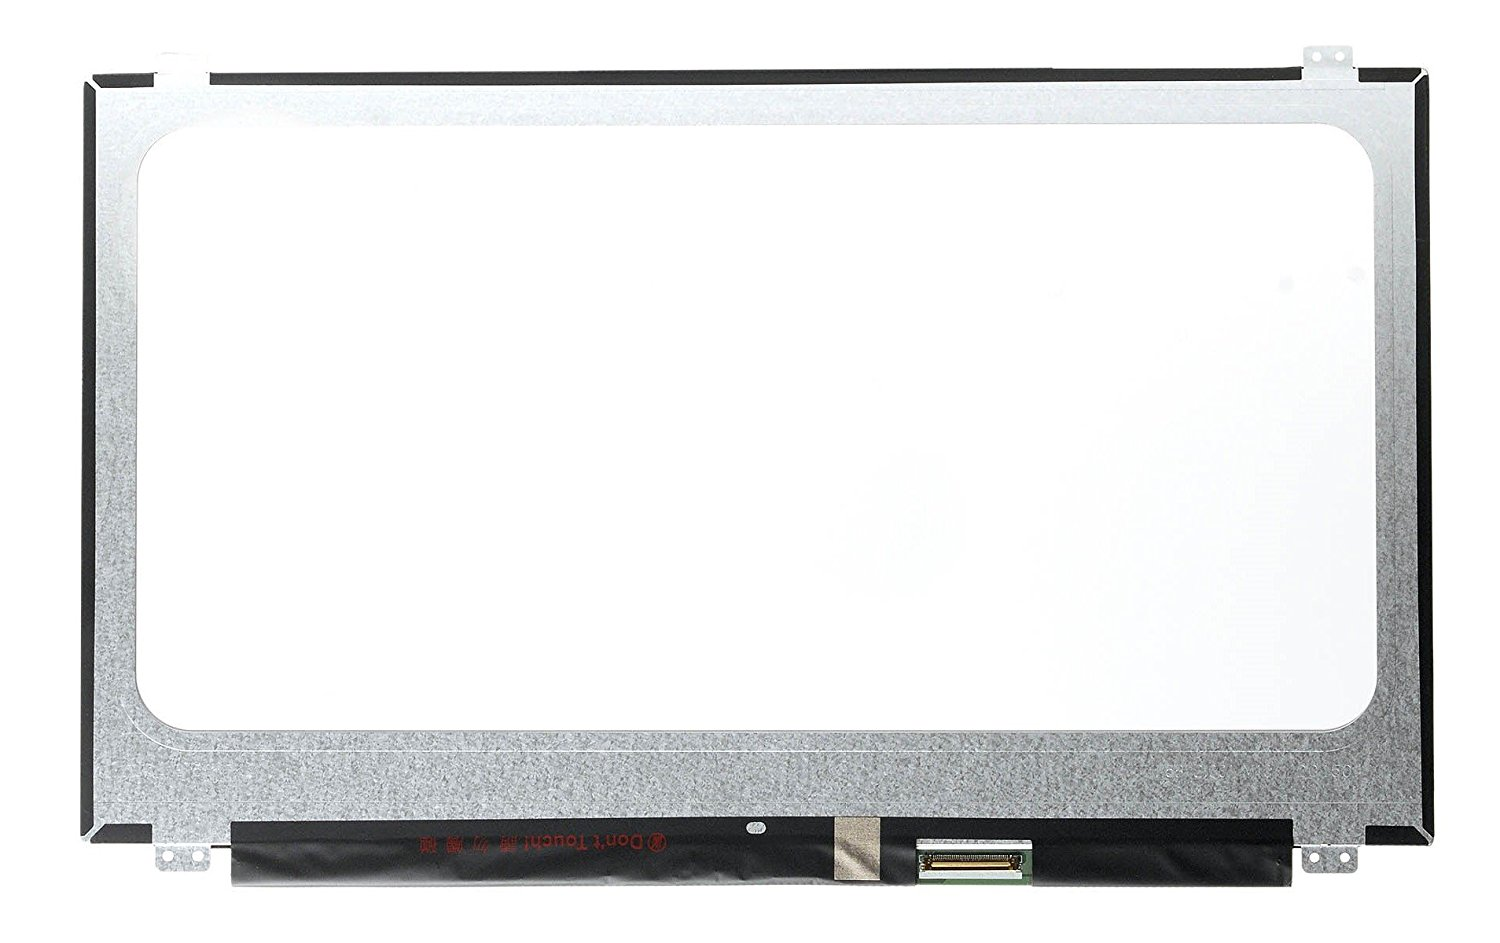 For Dell Inspiron 3558 15.6 LED LCD Touch Screen Display WXGA LTN156AR36-001 dell inspiron 3558